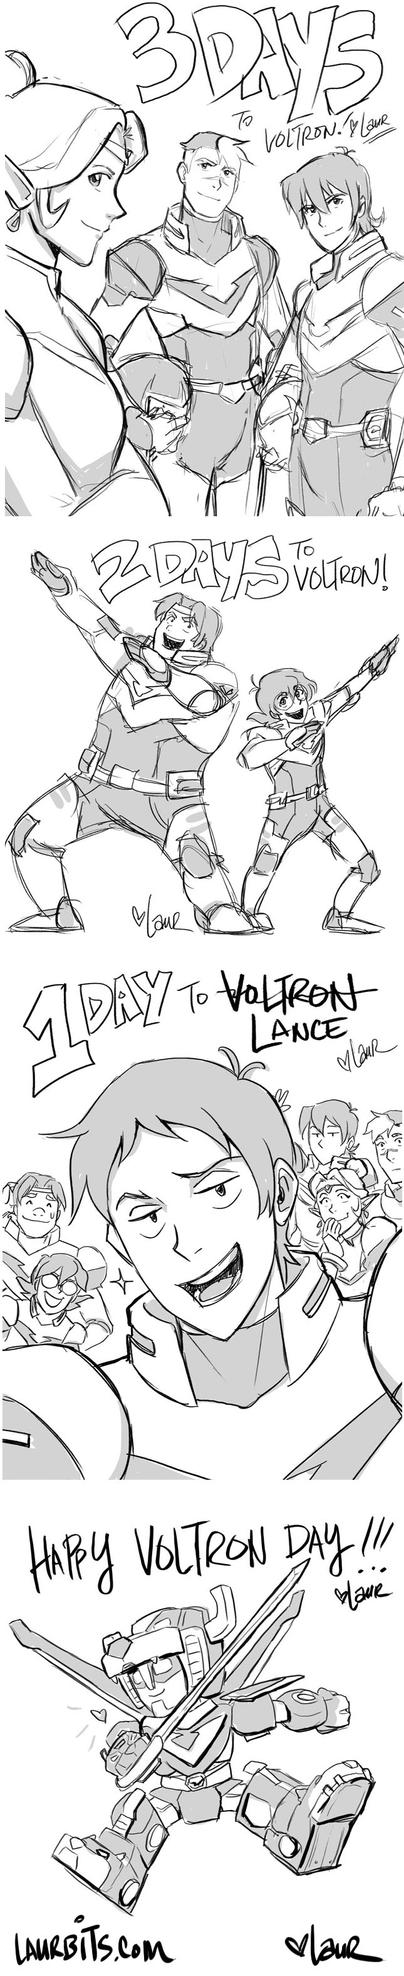 Countdown to Voltron sketches by laurbits